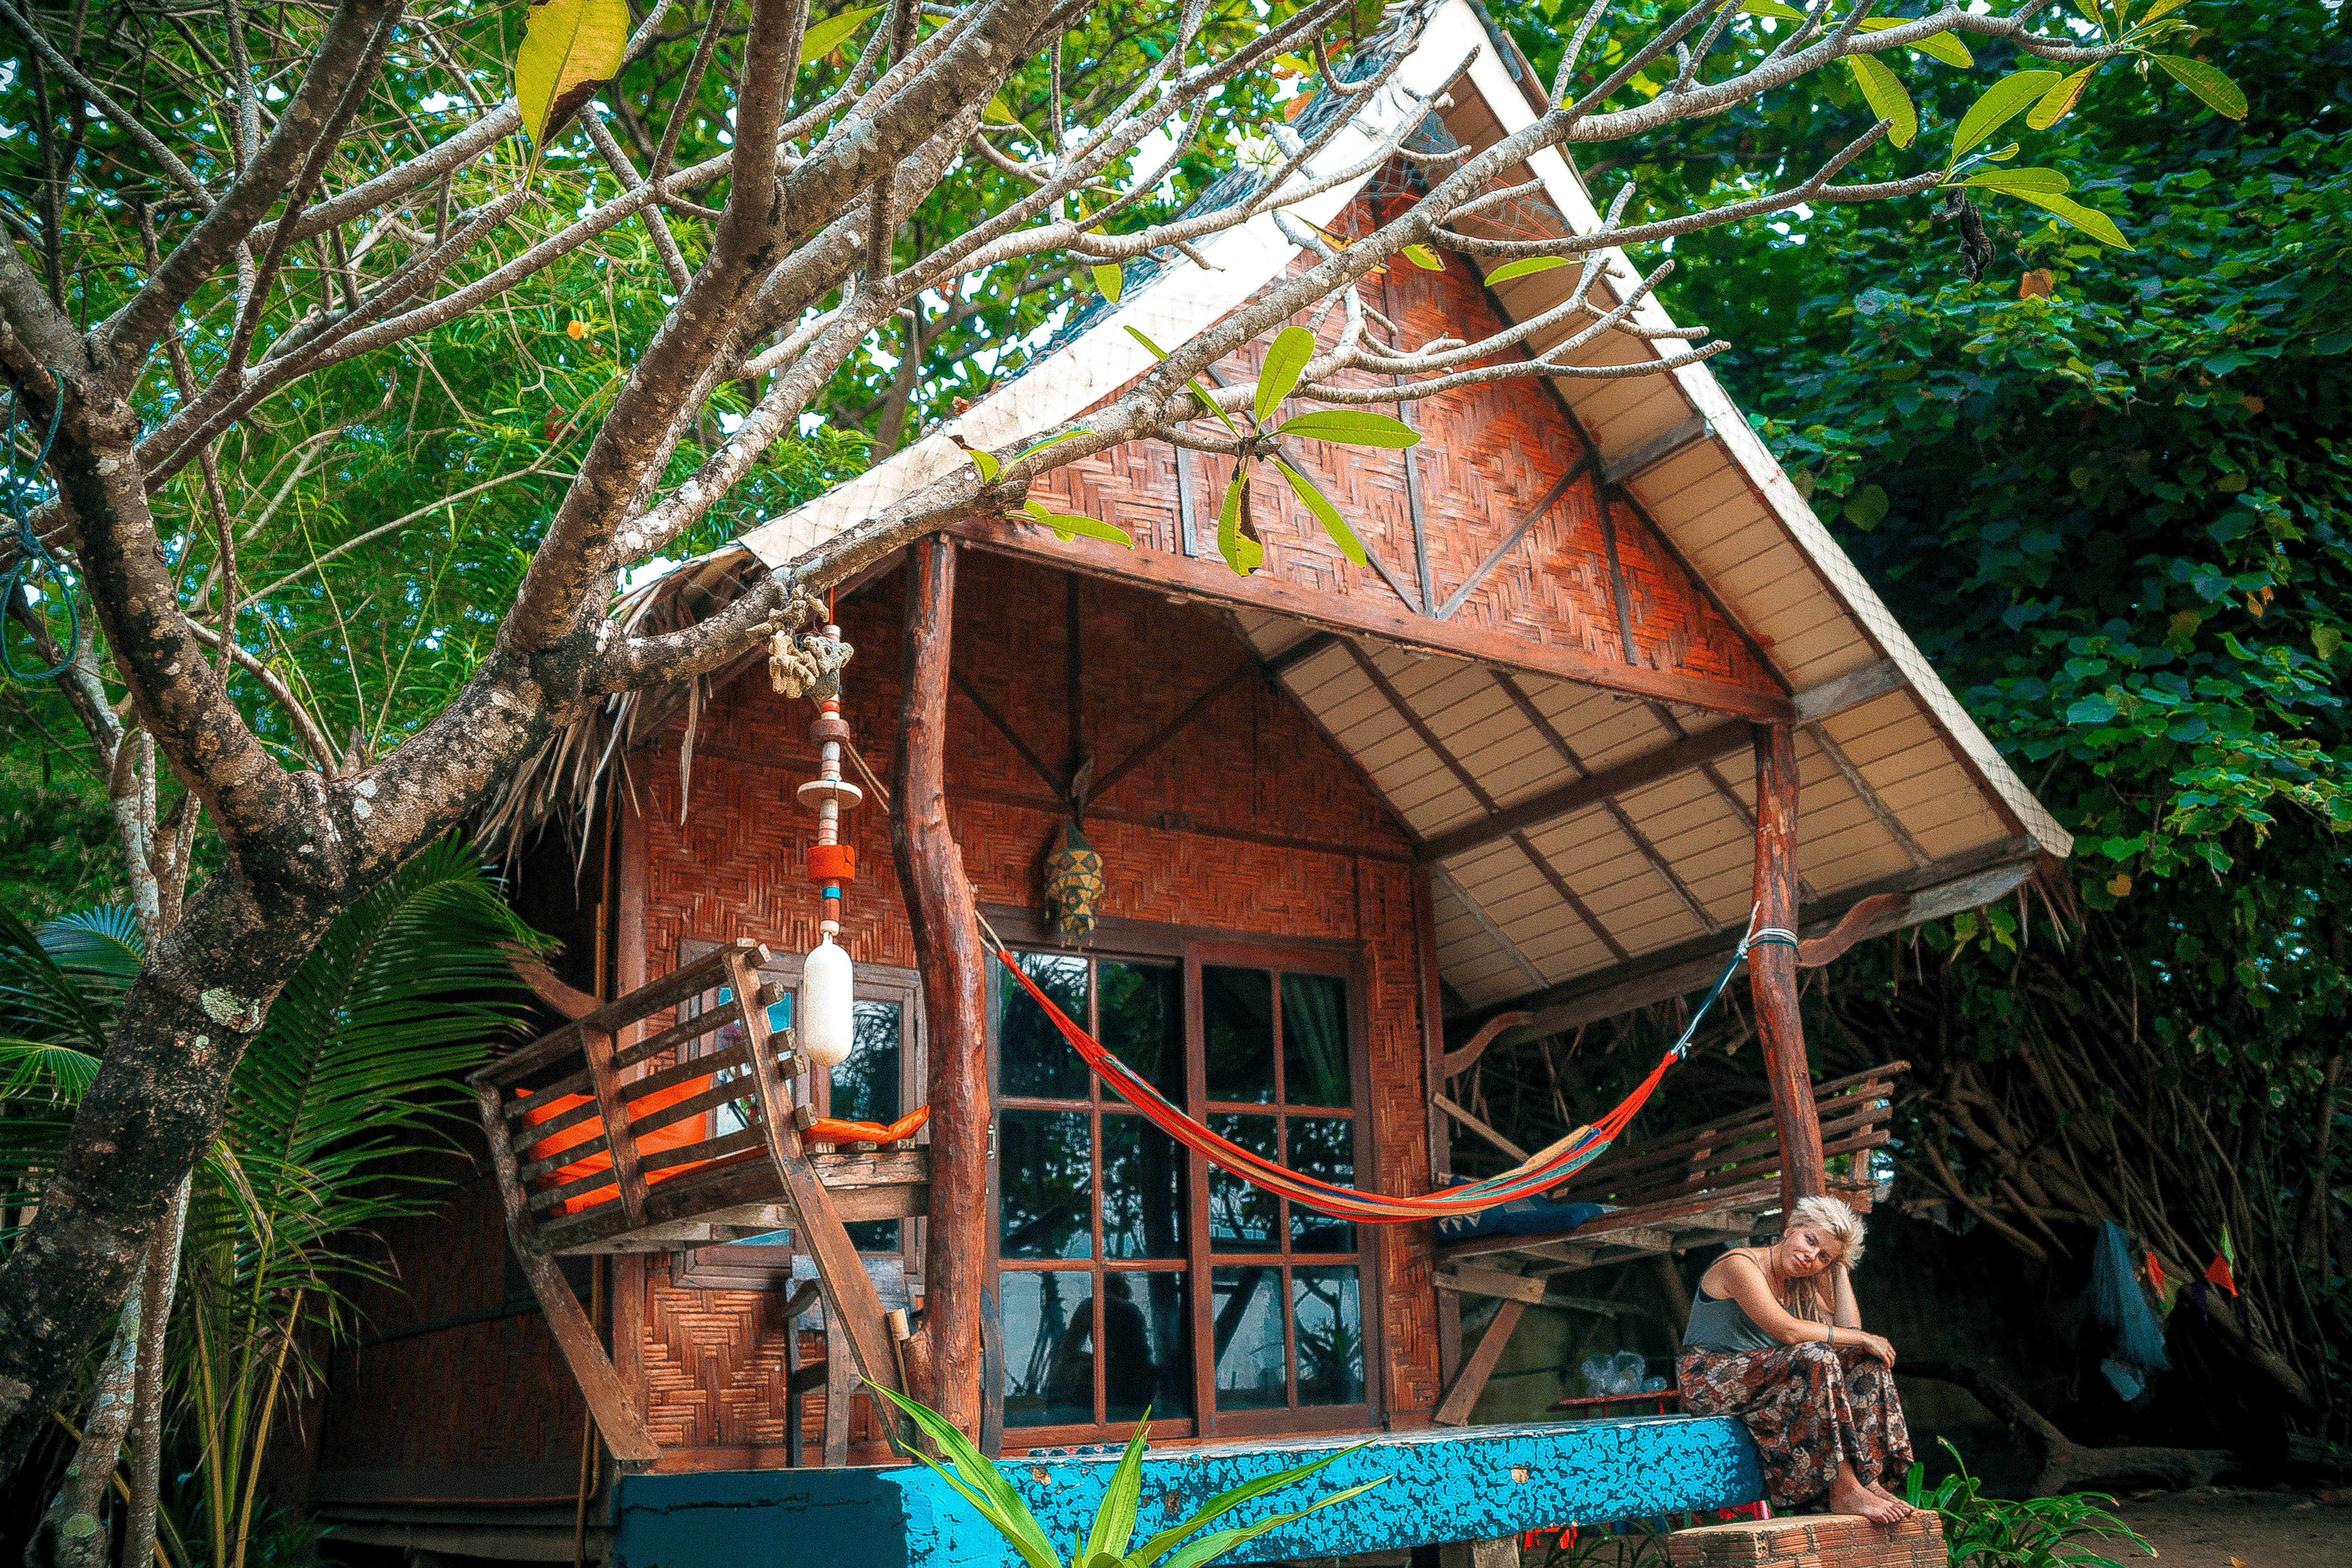 watcing magical sunset in koh lanta beach life vitamin sea drinking healthy smoothies bungalow next to the beach hammock